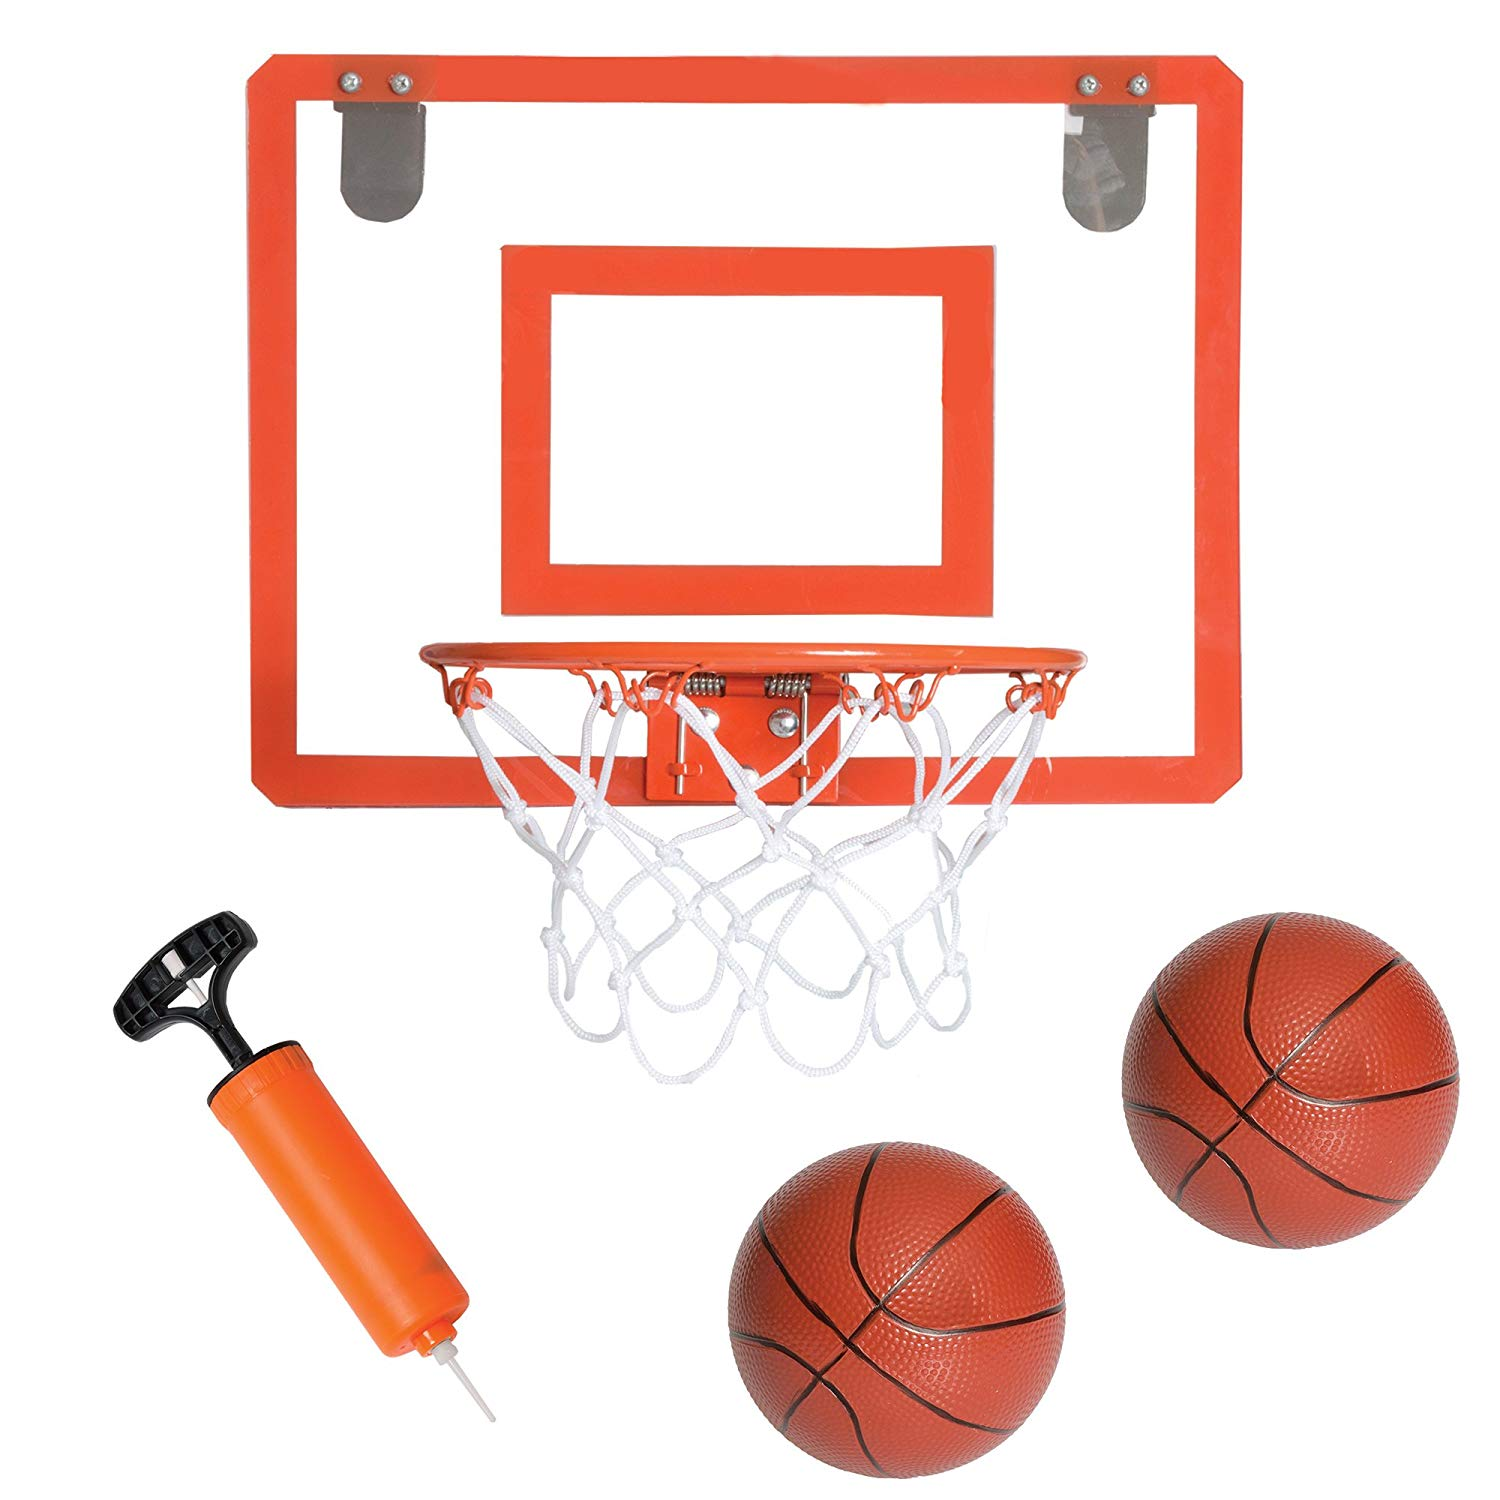 Stumptown Sportz Mini Basketballs for Mini Basketball Hoop Set Includes 2 x 5 inch Basketballs and 1 Hand Pump with Inflation Needles